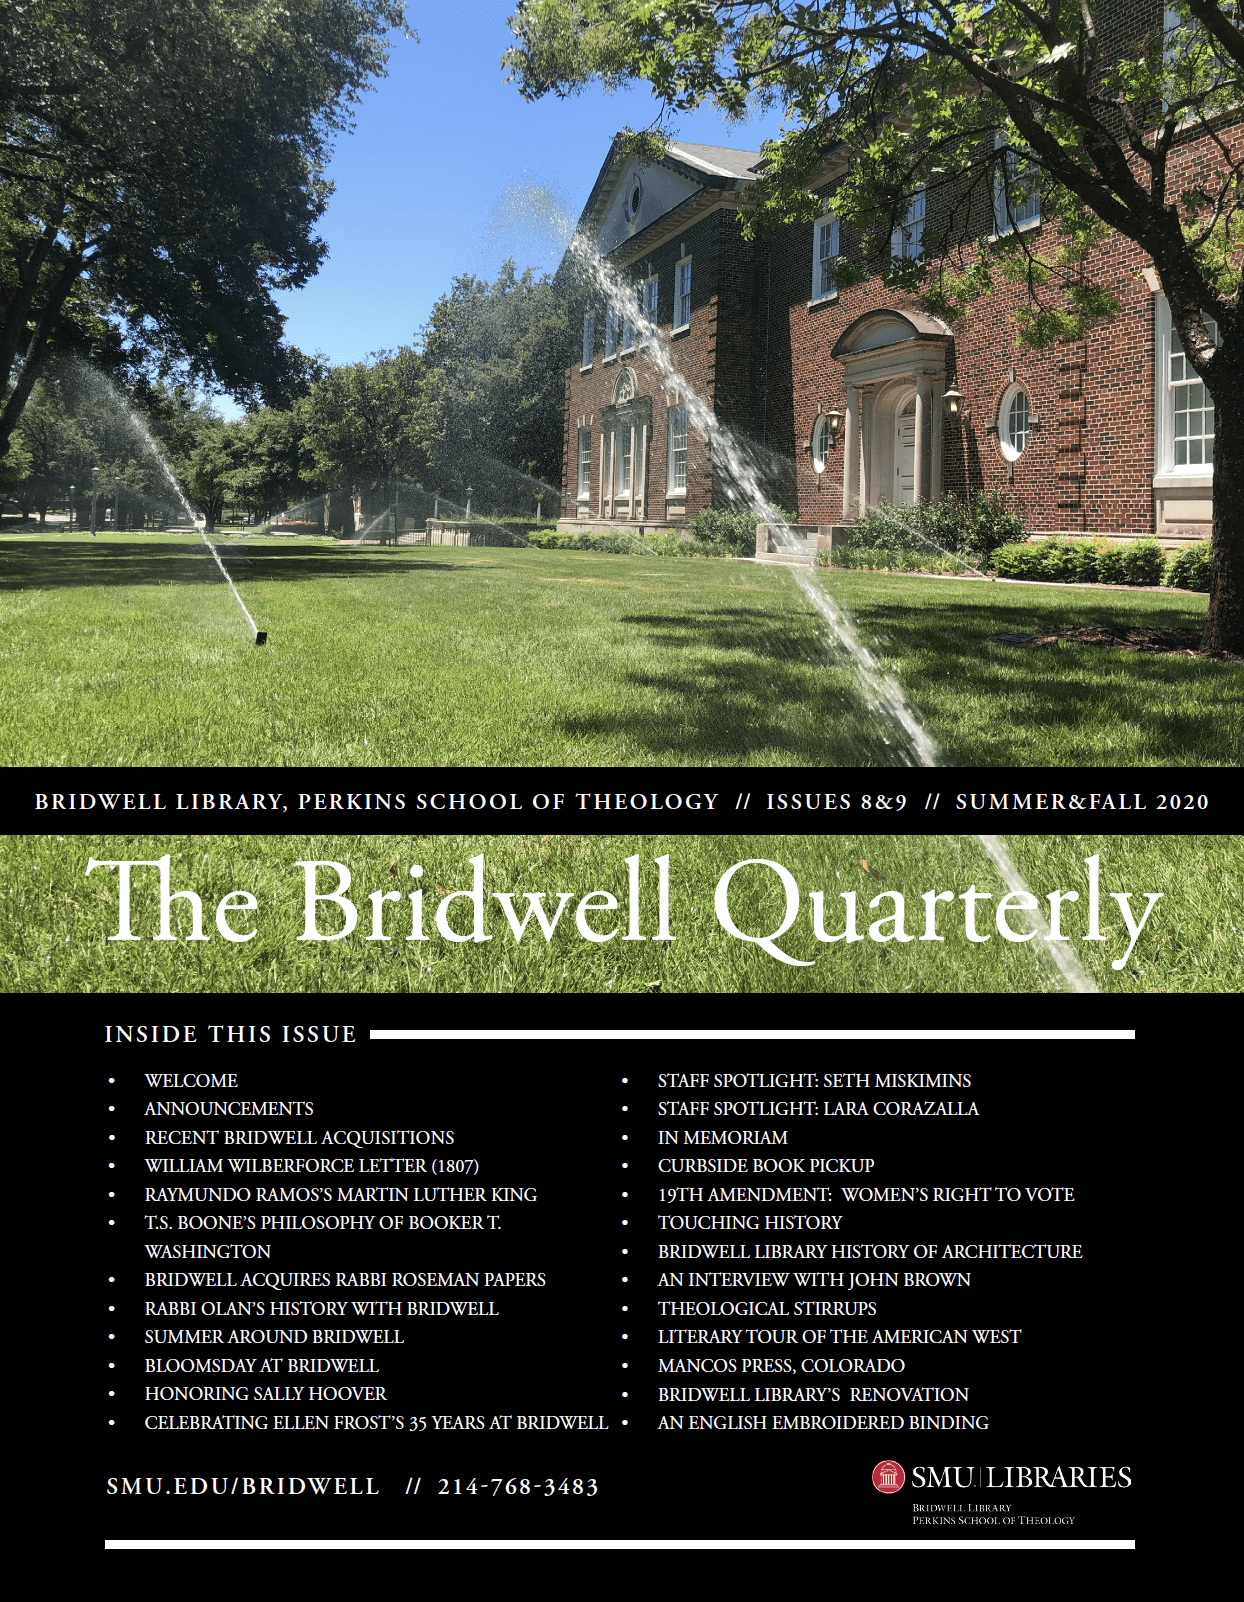 The Bridwell Quarterly Issues 8-9 Summer Fall 2020